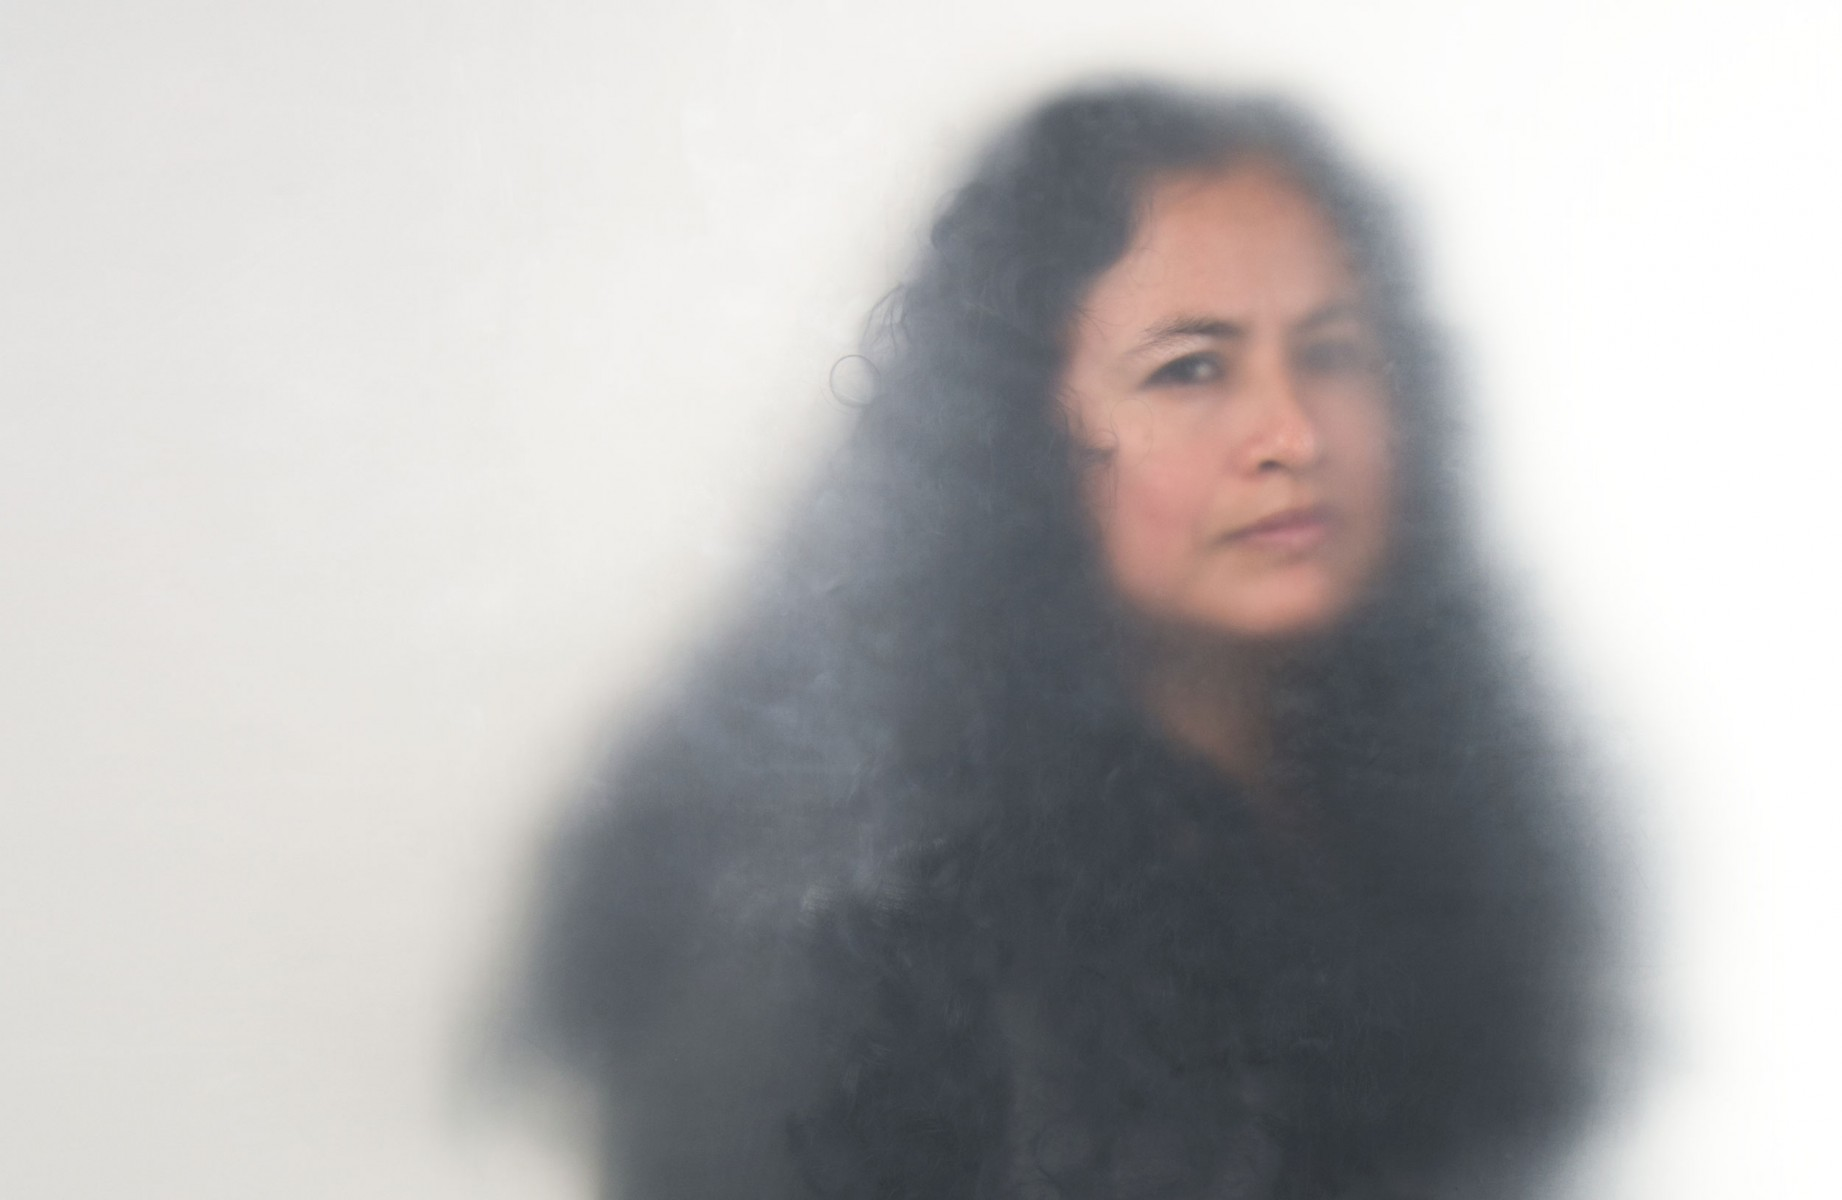 A woman with wavy black hair